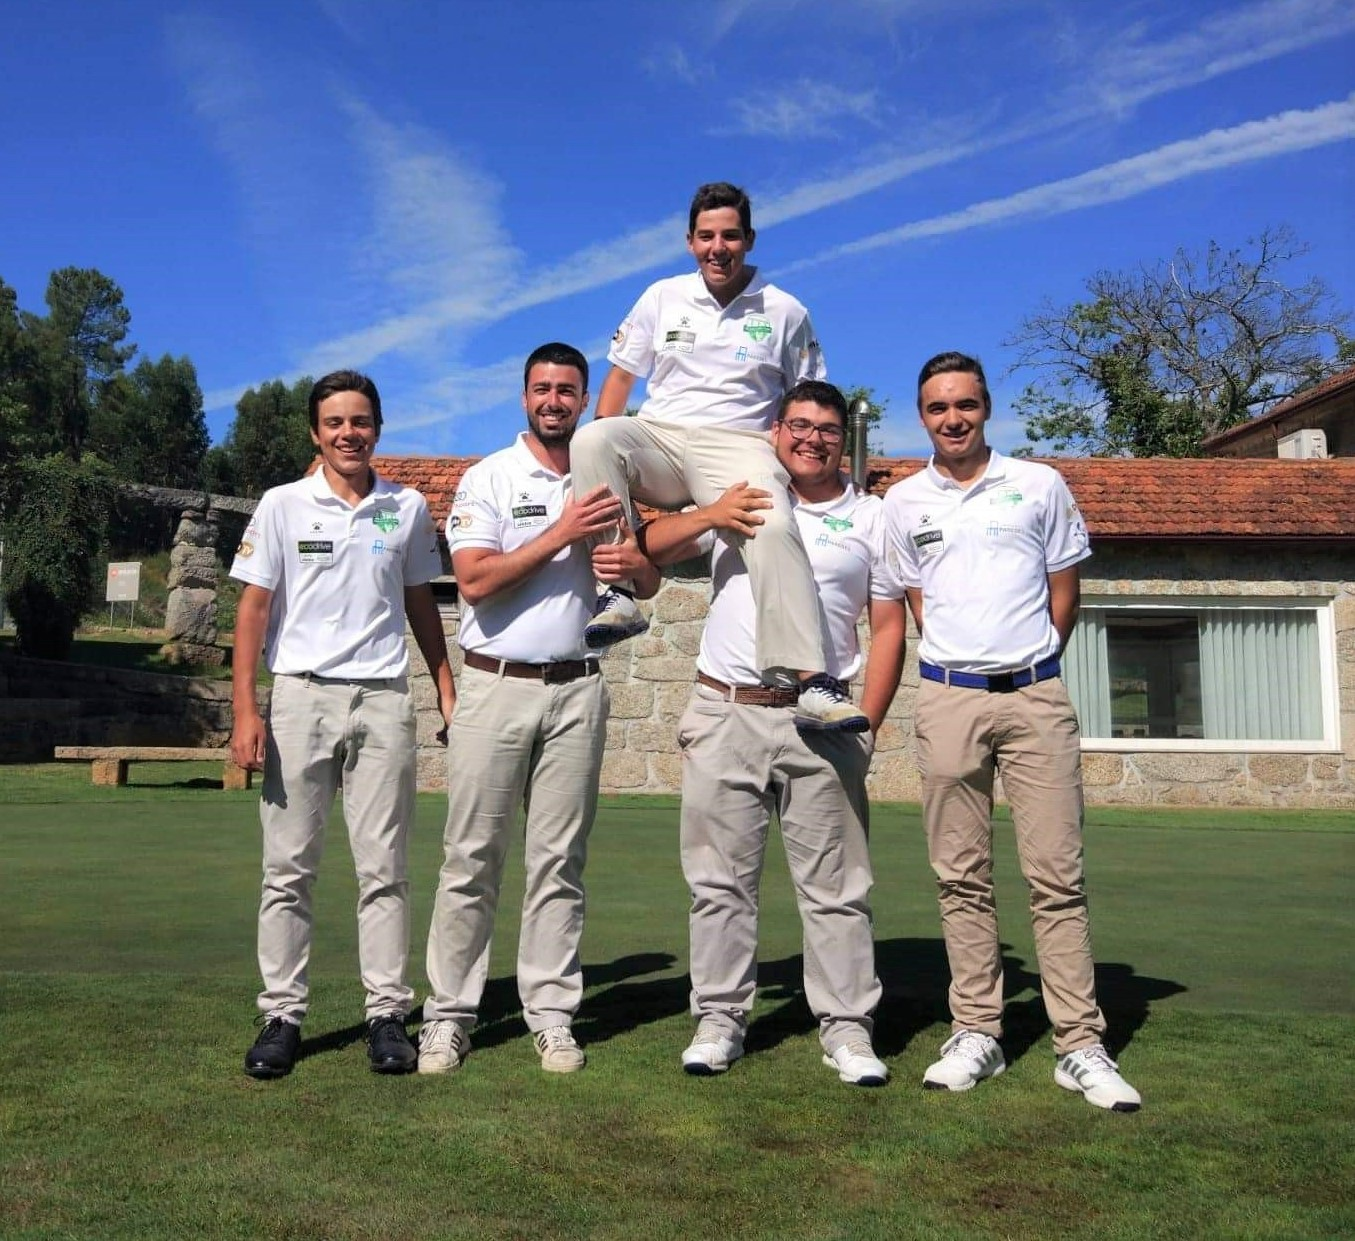 Campeonato do Norte de Portugal de Clubes Pitch & Putt 2019 – Paredes GC venceu em todas as frentes.